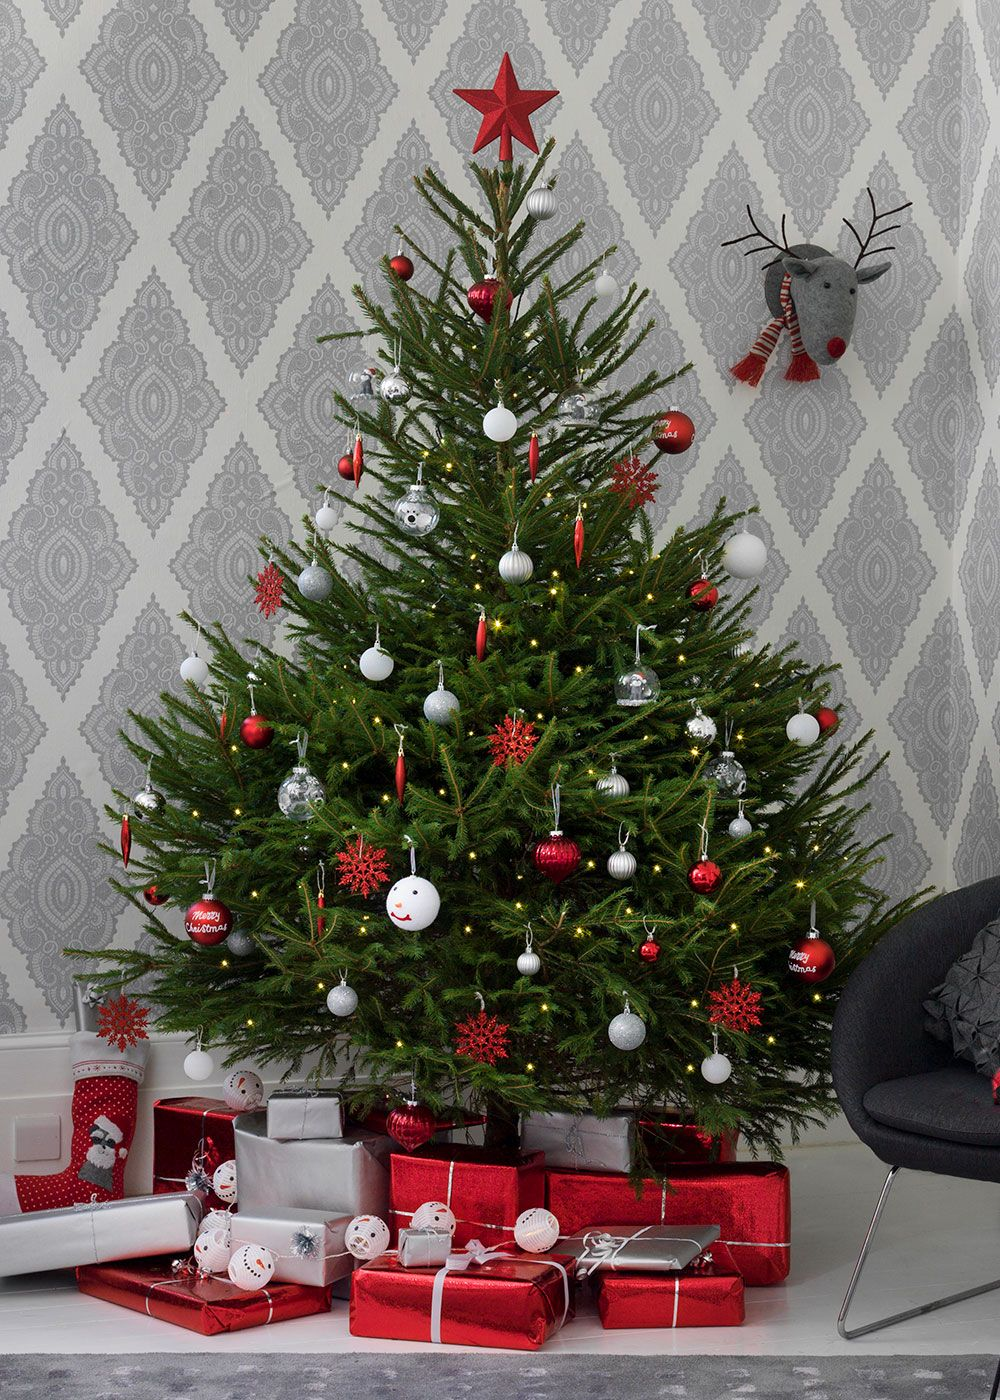 Pick the right real Christmas tree for your home and look after it properly, and it will look healthy and hearty right through until January 6th